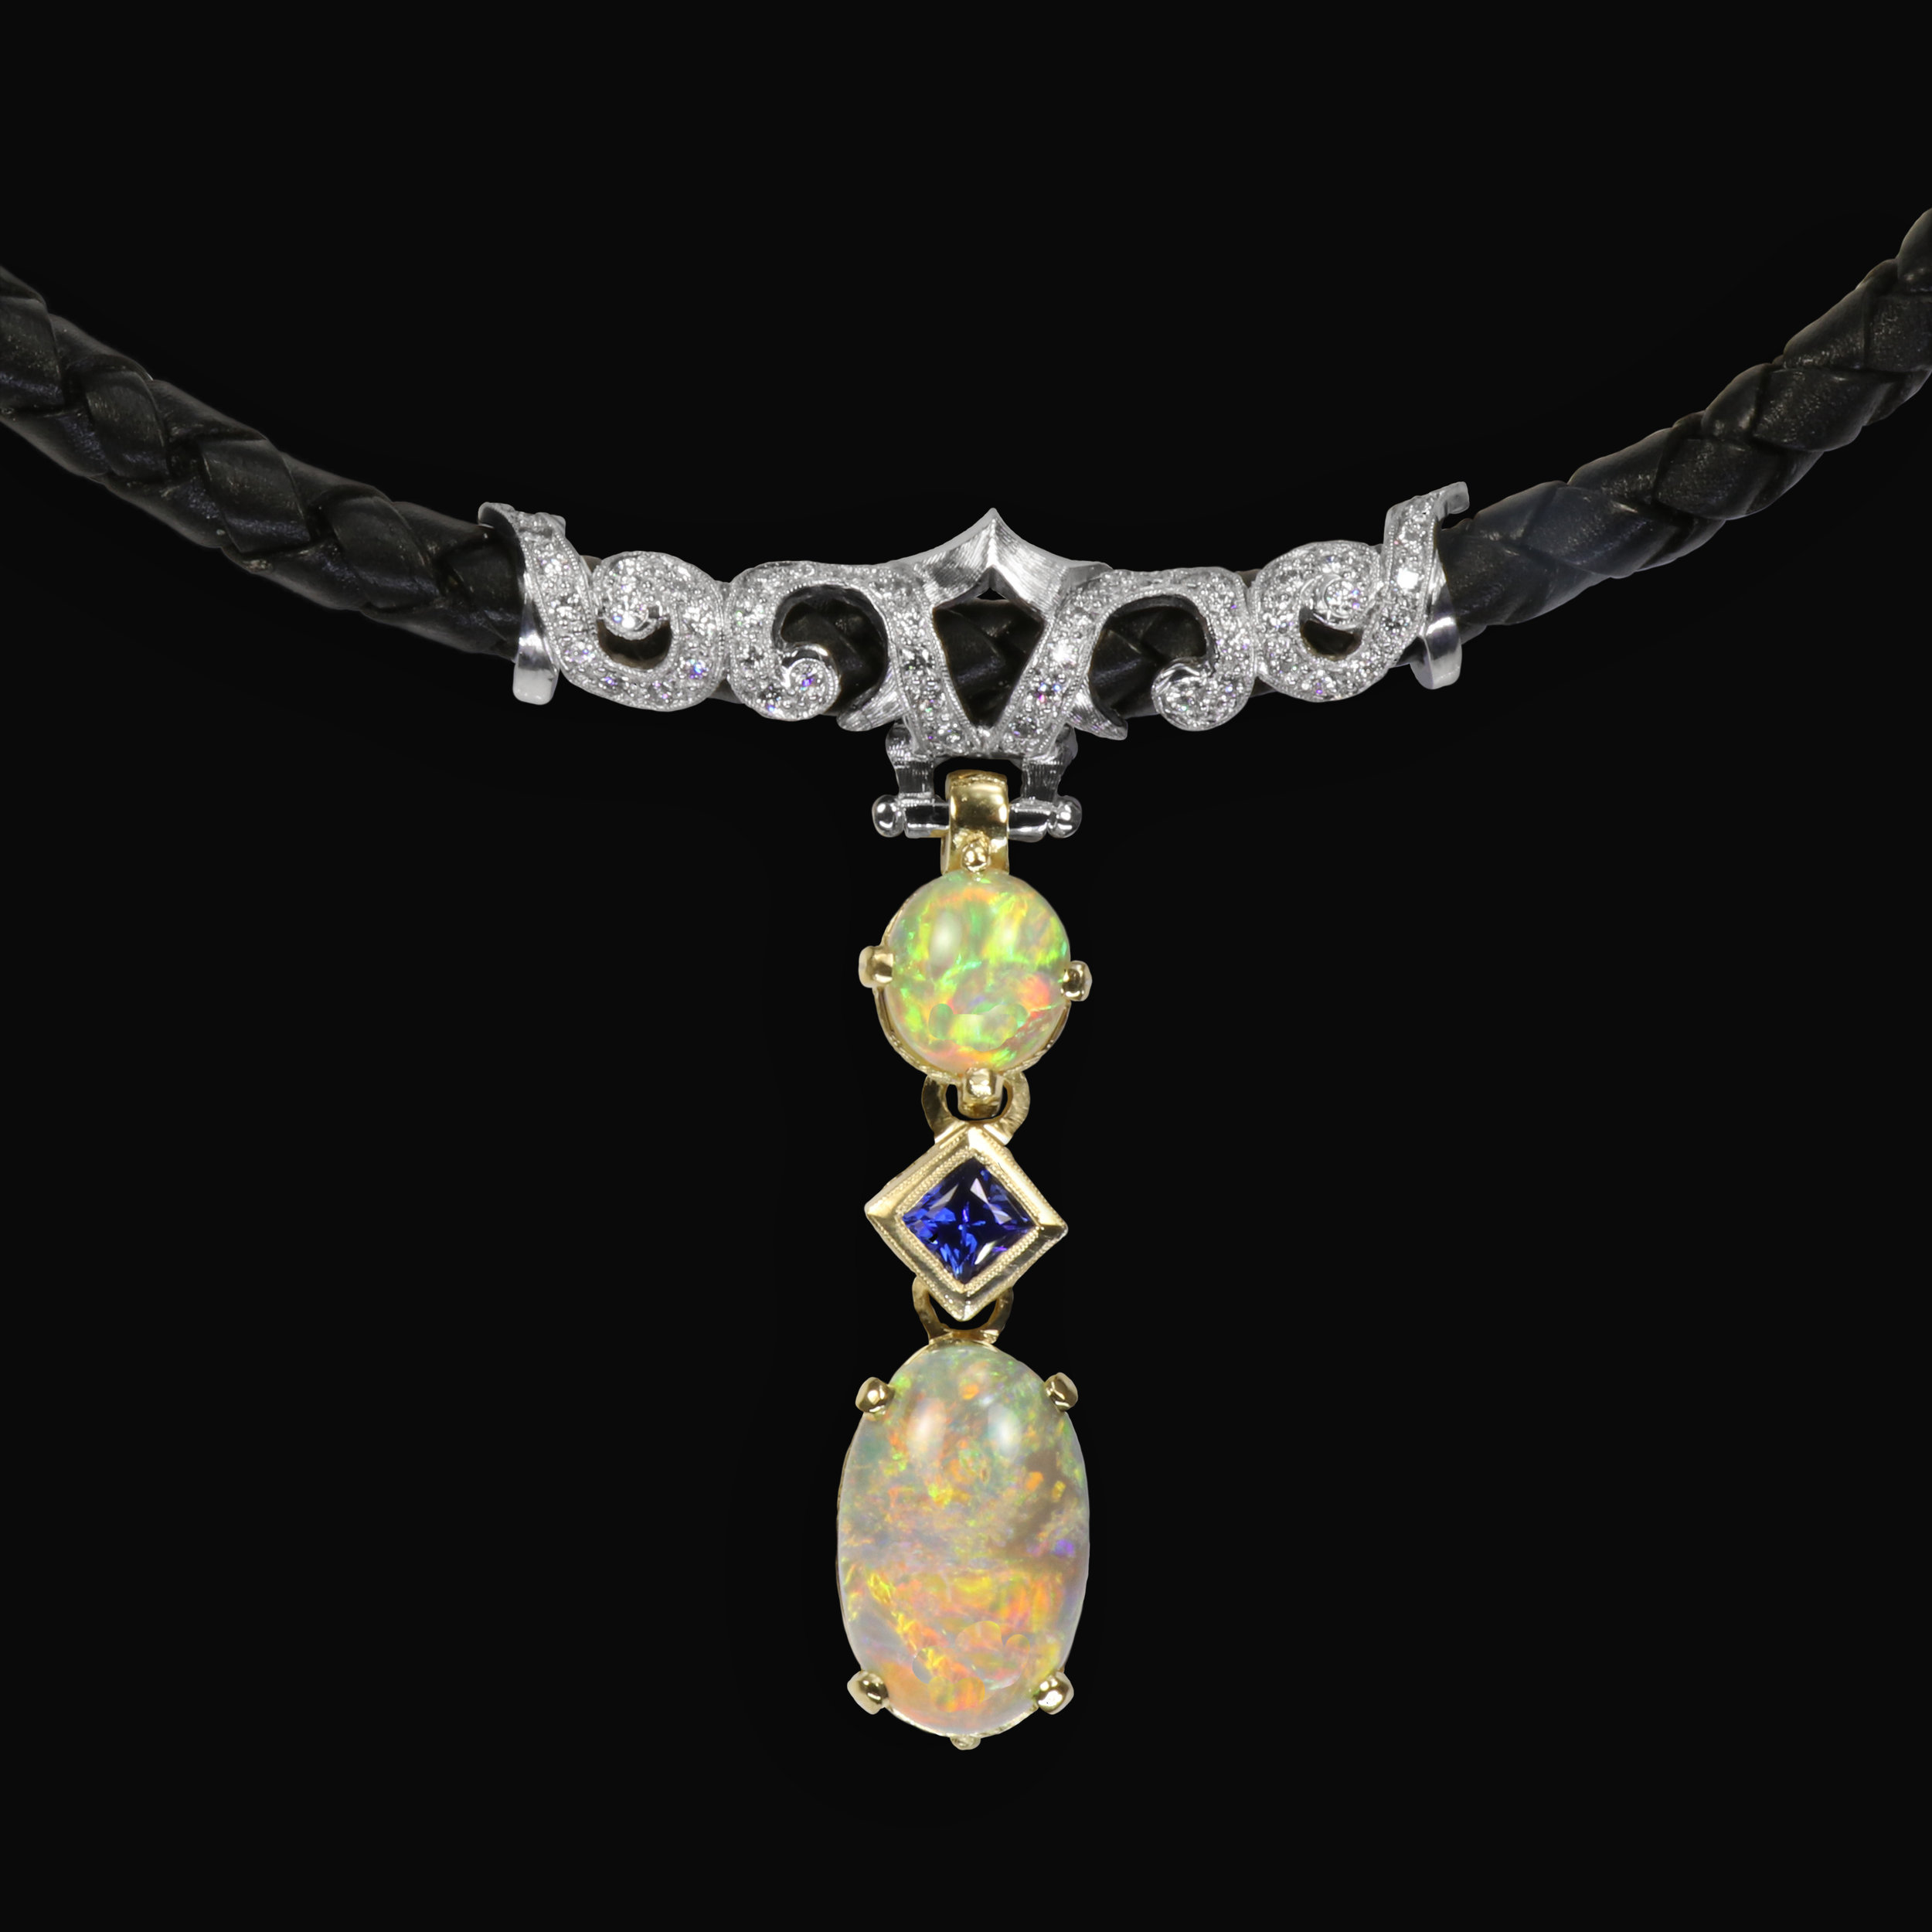 2 opal leather necklace charcol bkg.jpg